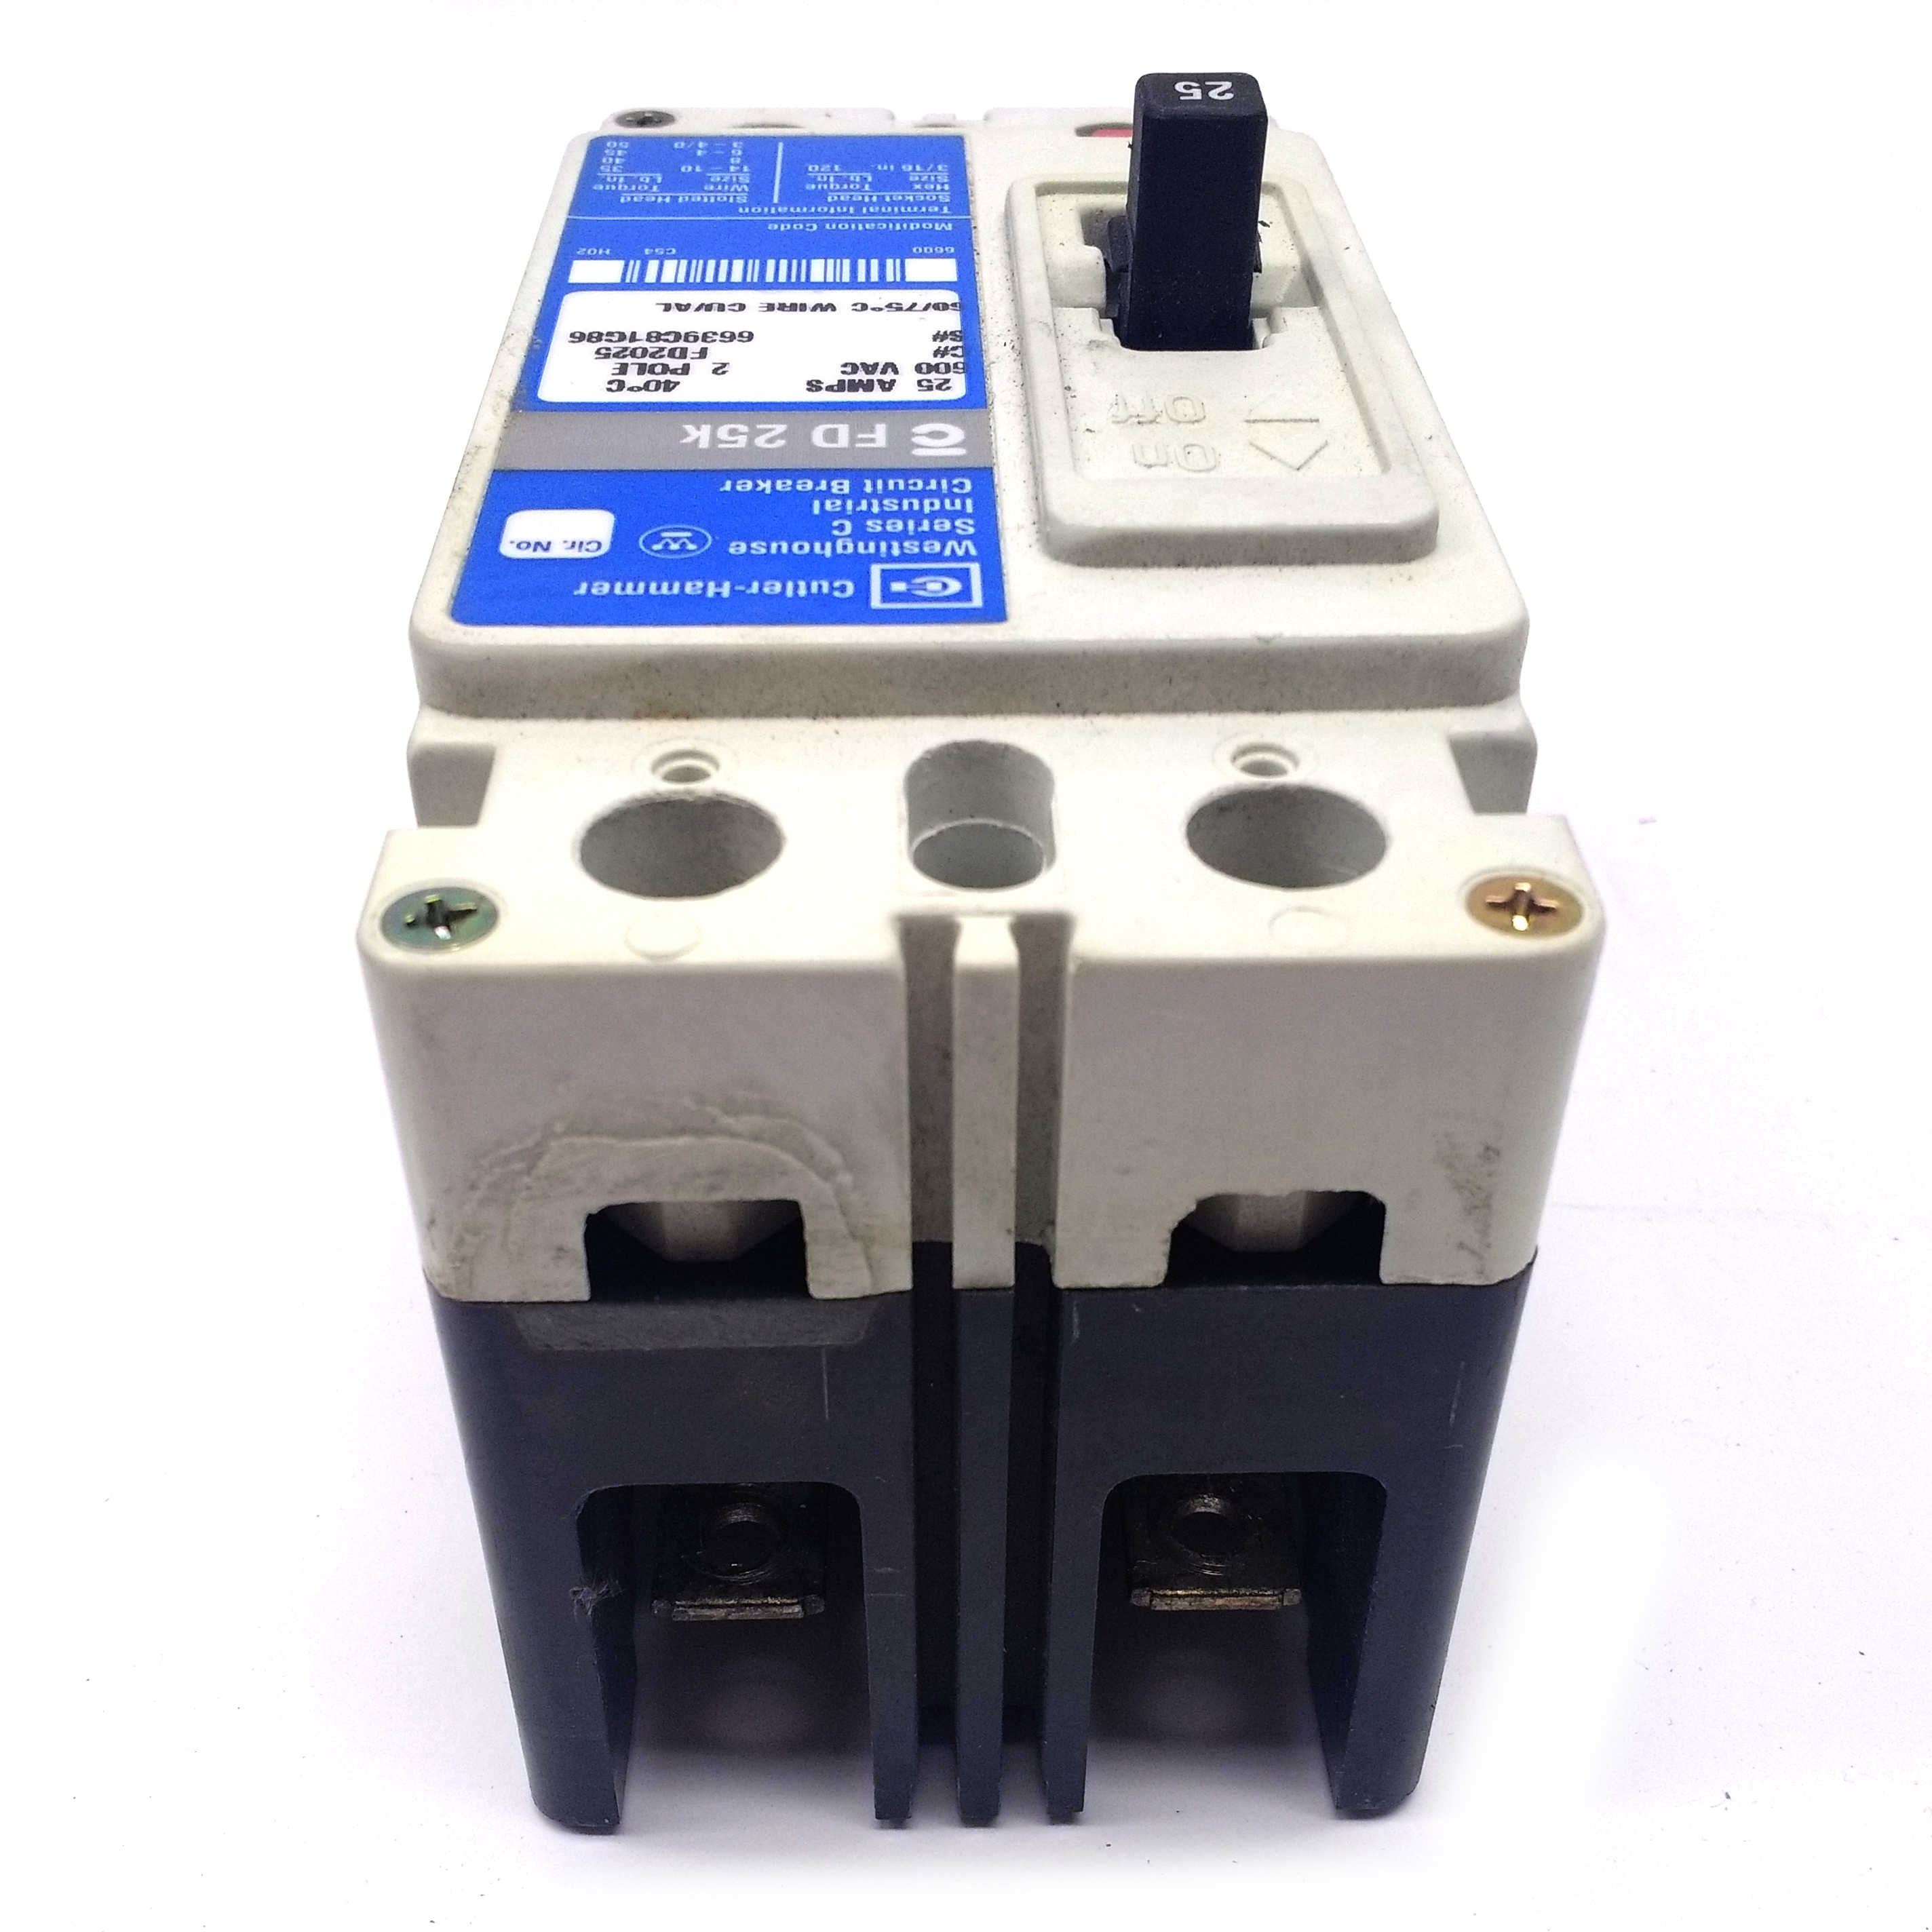 Fd2025 Cuttler Hammer Circuit Breaker 2 Pole 25a Counterfeit Eaton Molded Case Breakers Consumer Alert Click Image To Expand